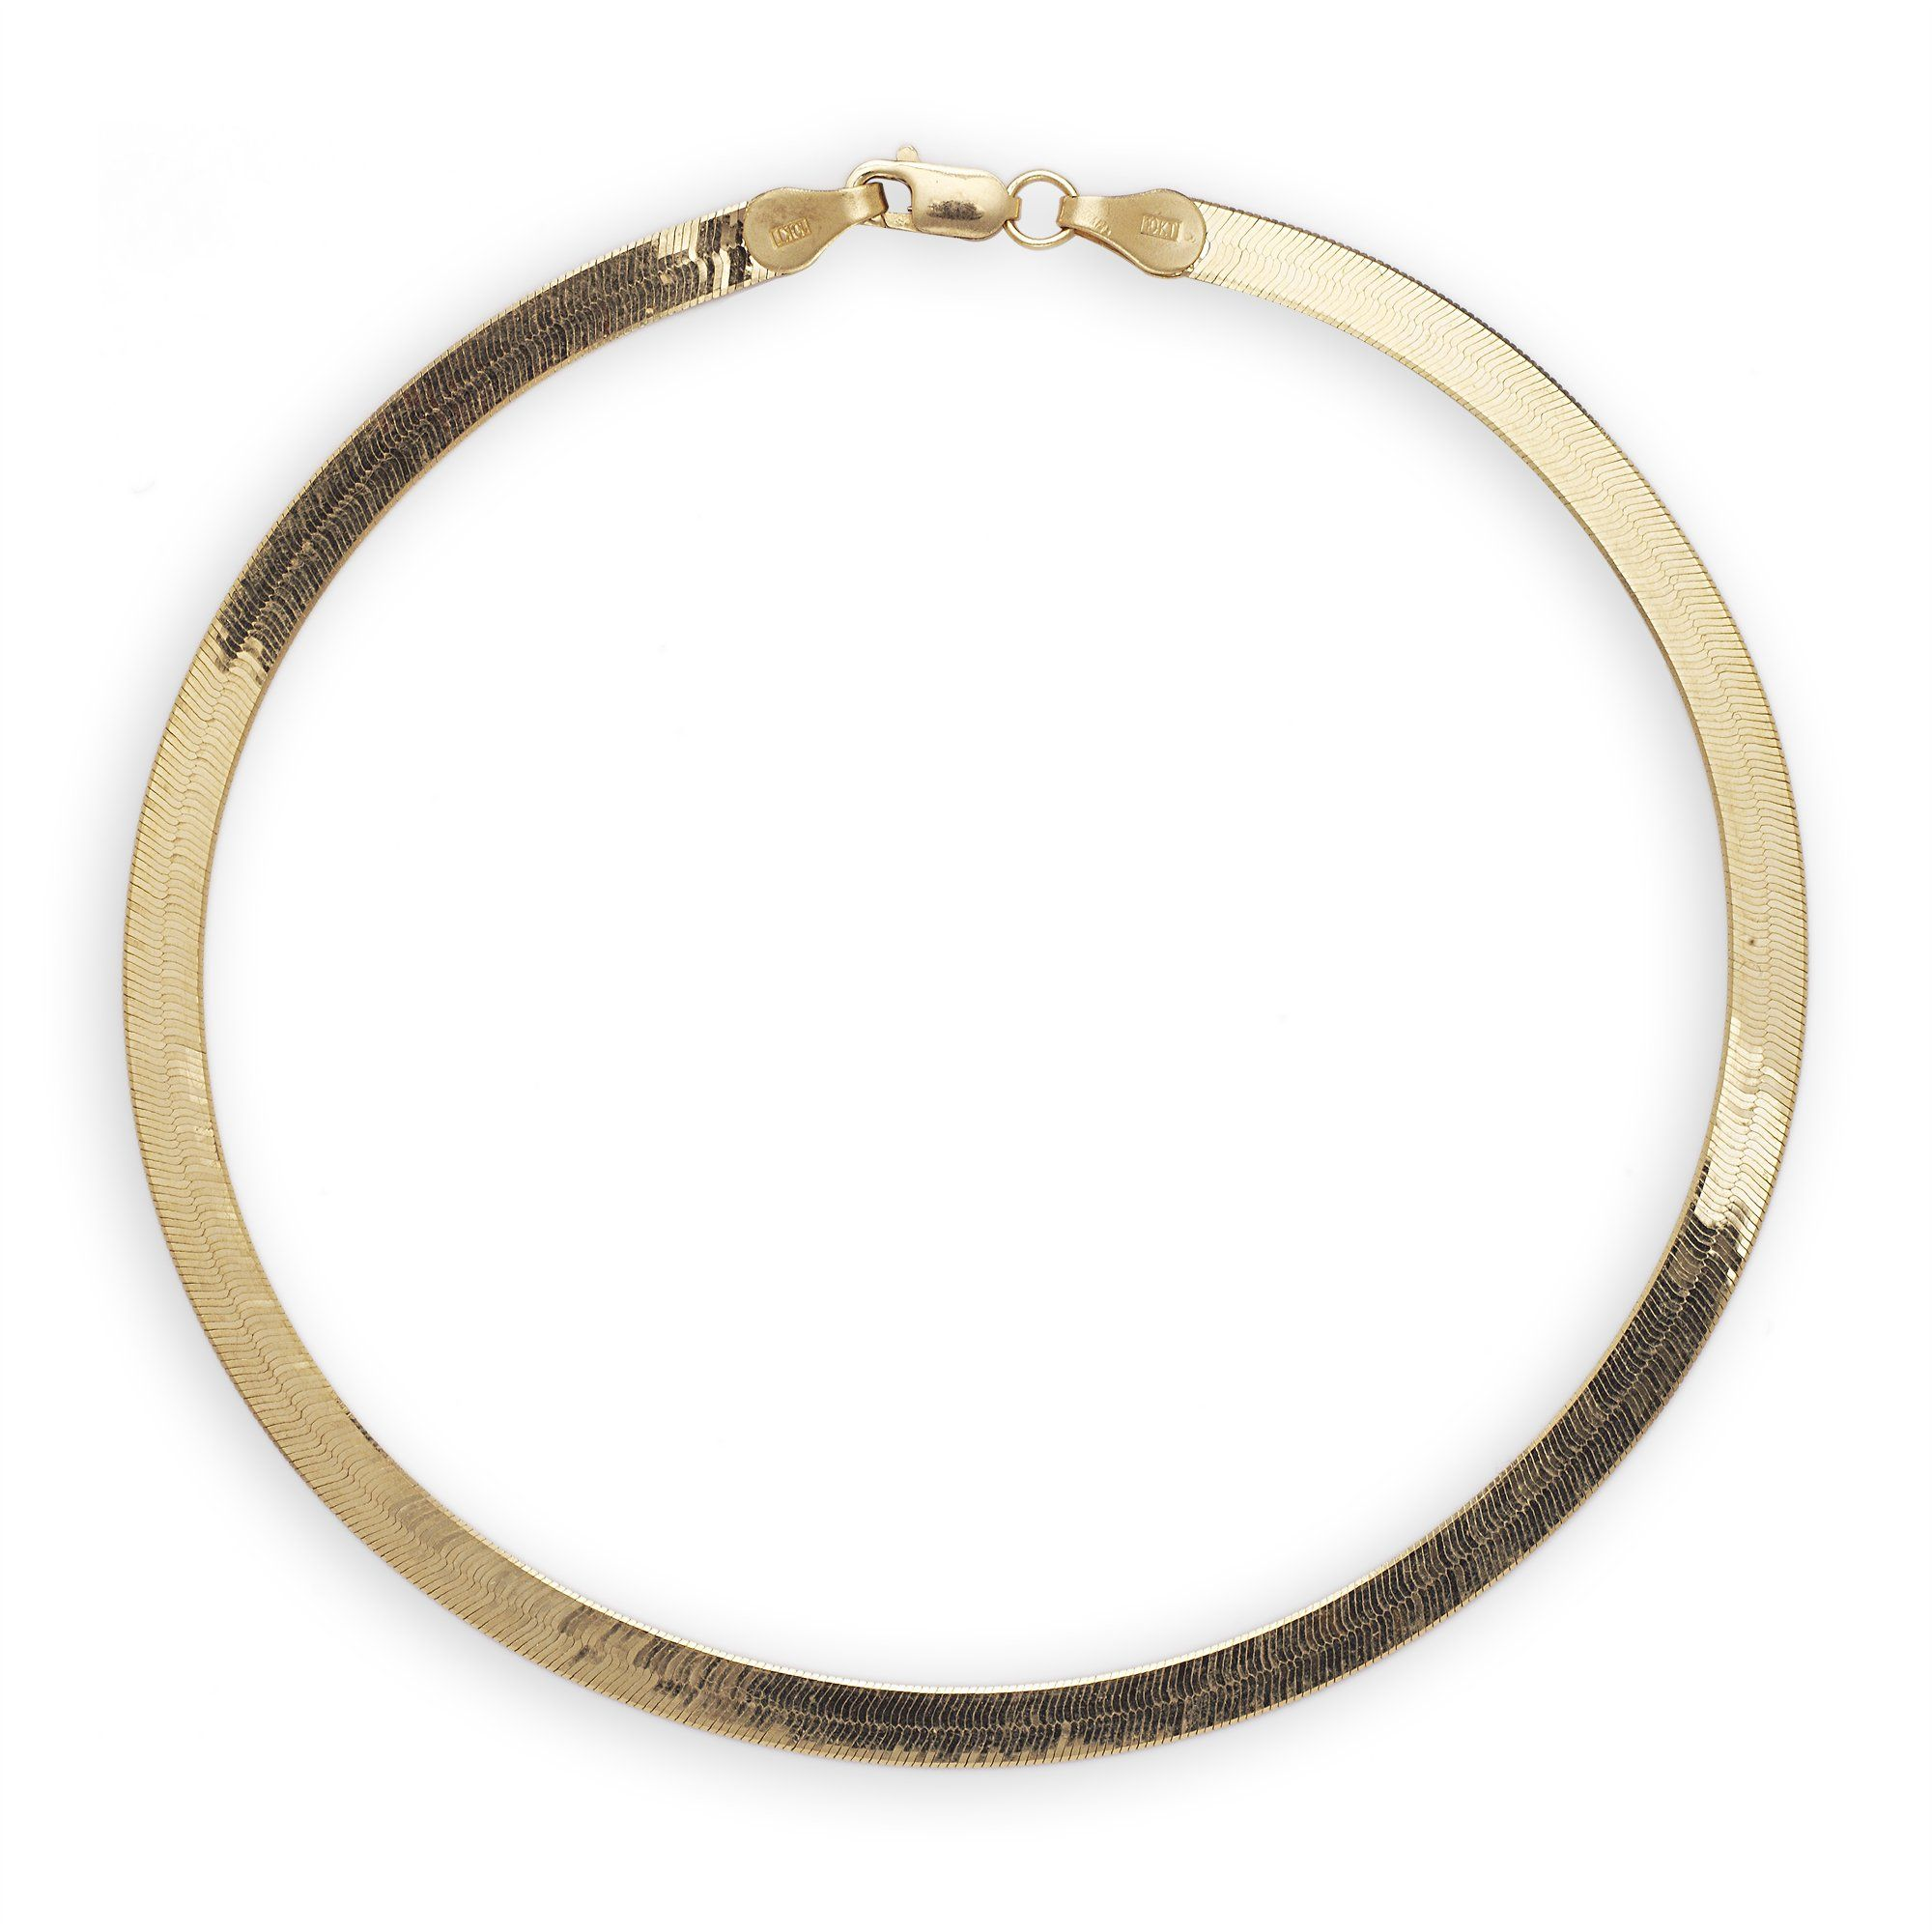 station gold bangles bar bracelet fremada on tone inch bangle link pin two mariner inches